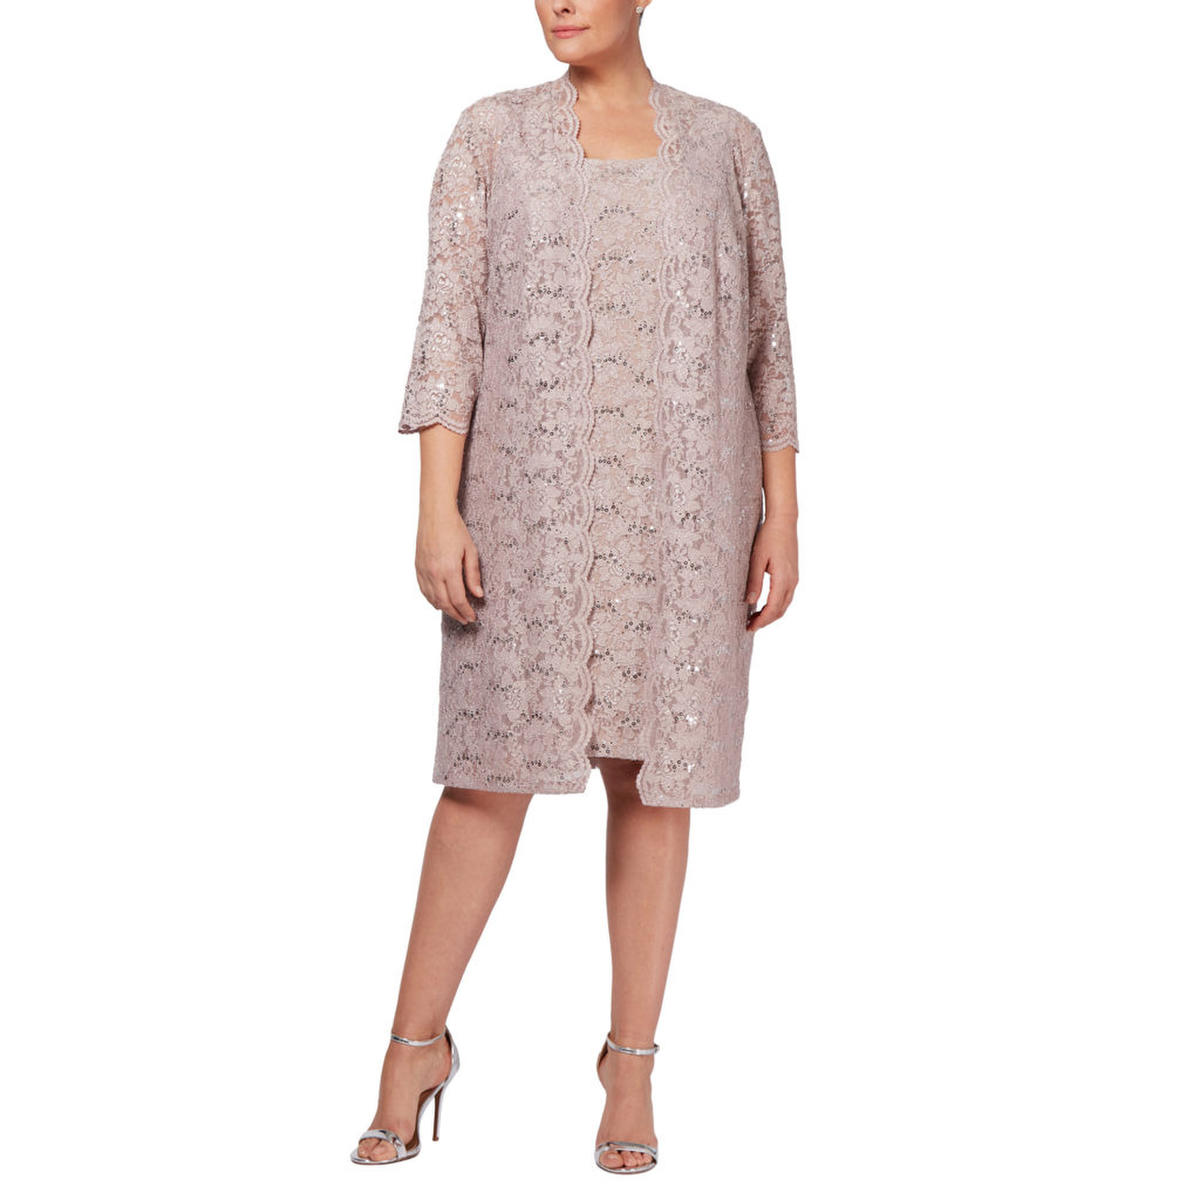 ALEX APPAREL GROUP INC - Plus Size Sequined Lace Dress & Duster Jacket